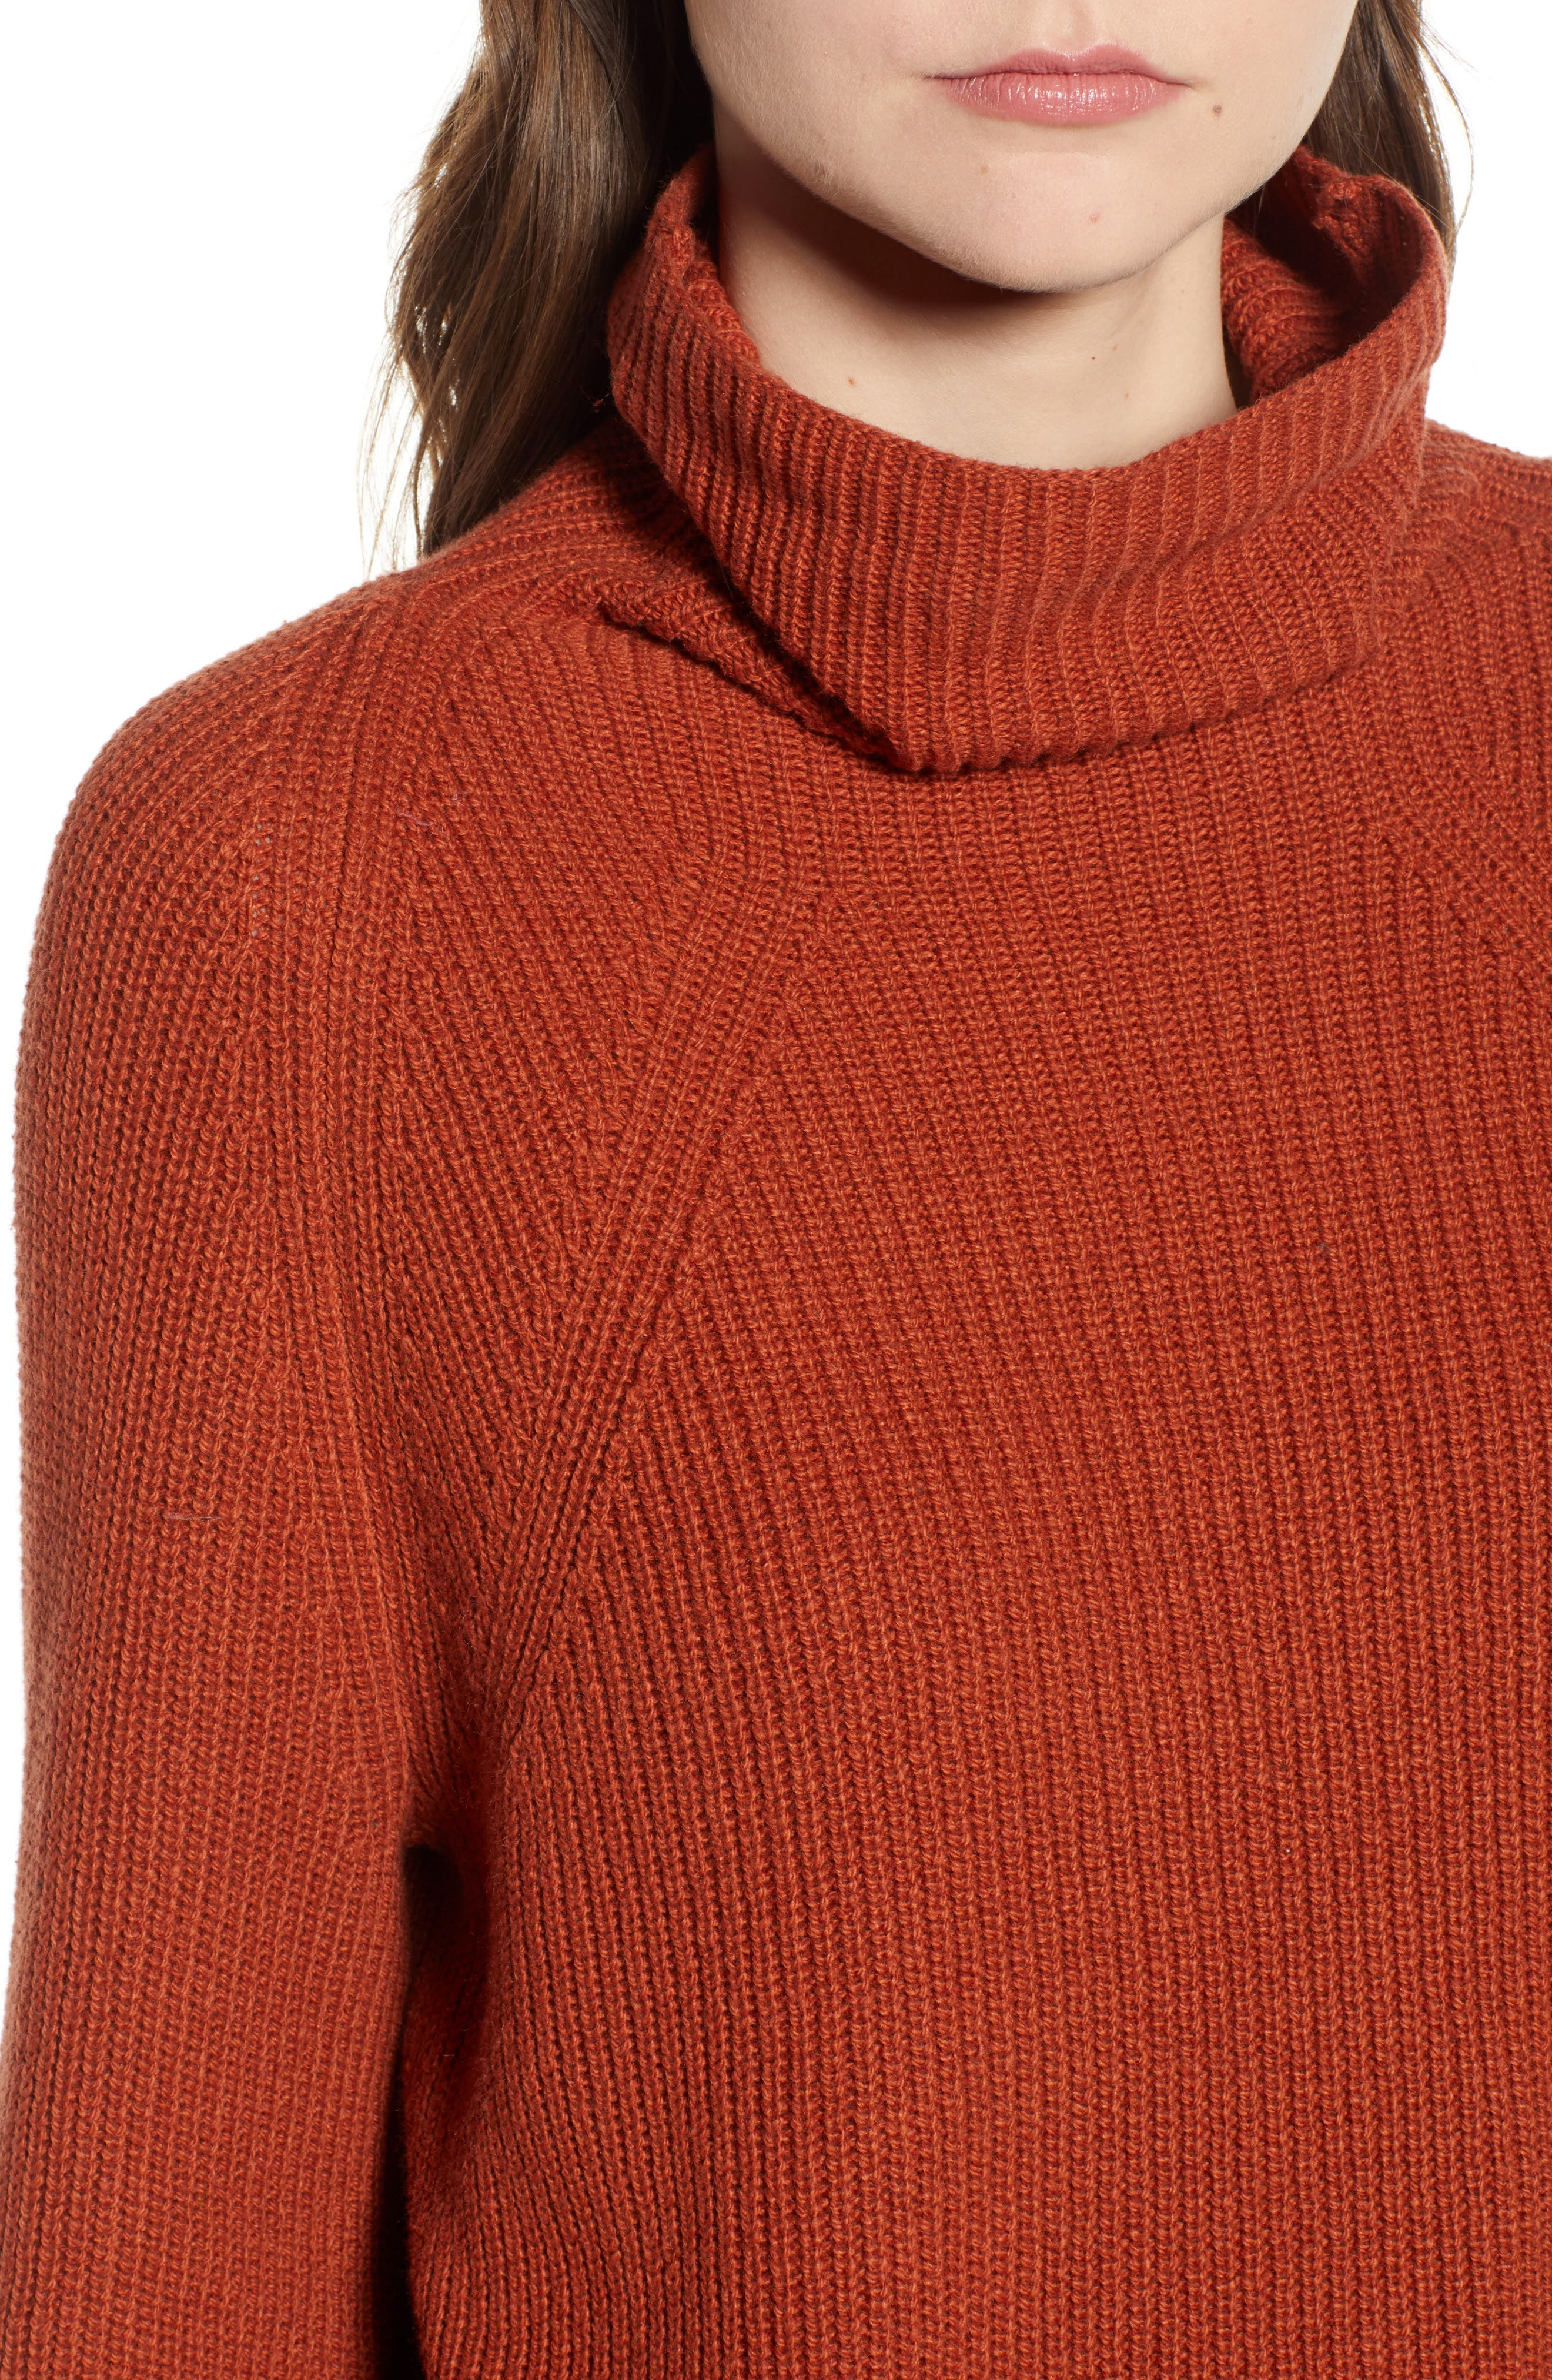 LEITH, Transfer Stitch Turtleneck Sweater, Alternate thumbnail 4, color, 210